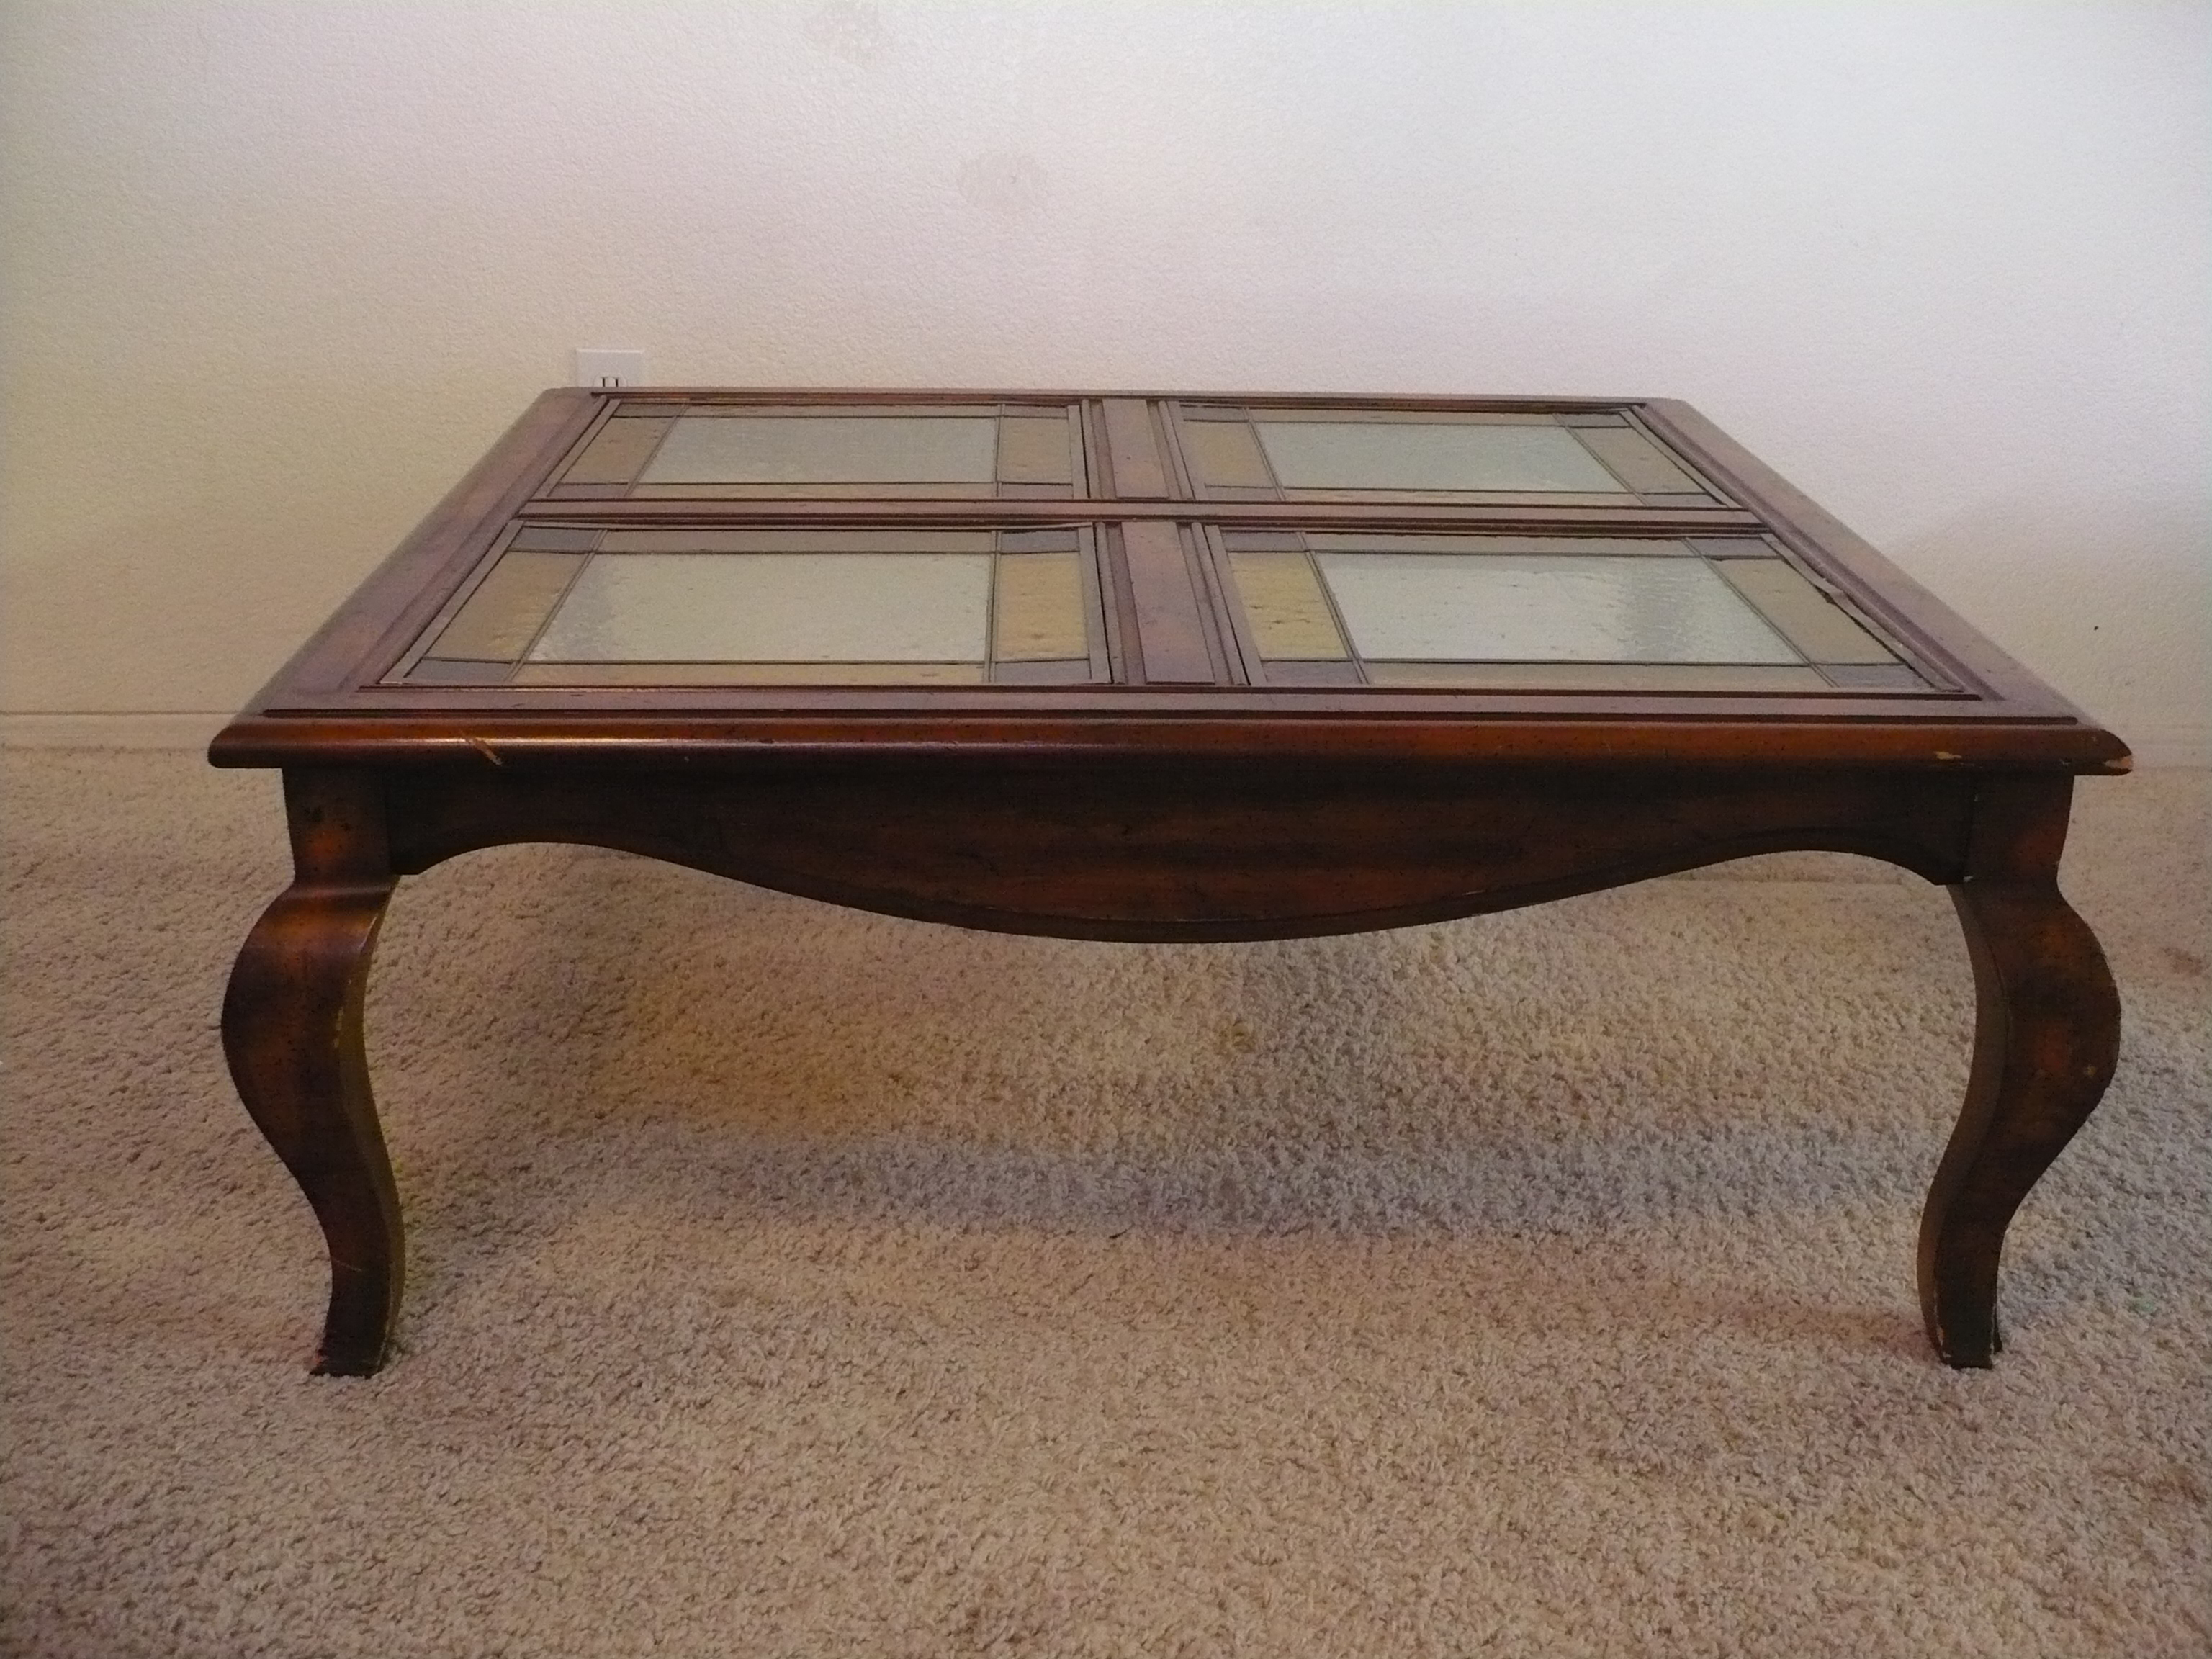 coffee tables furniture finds table stained glass end share this industrial nightstand diy liberty ocean isle collection ethan allen american impressions dining oriental nesting